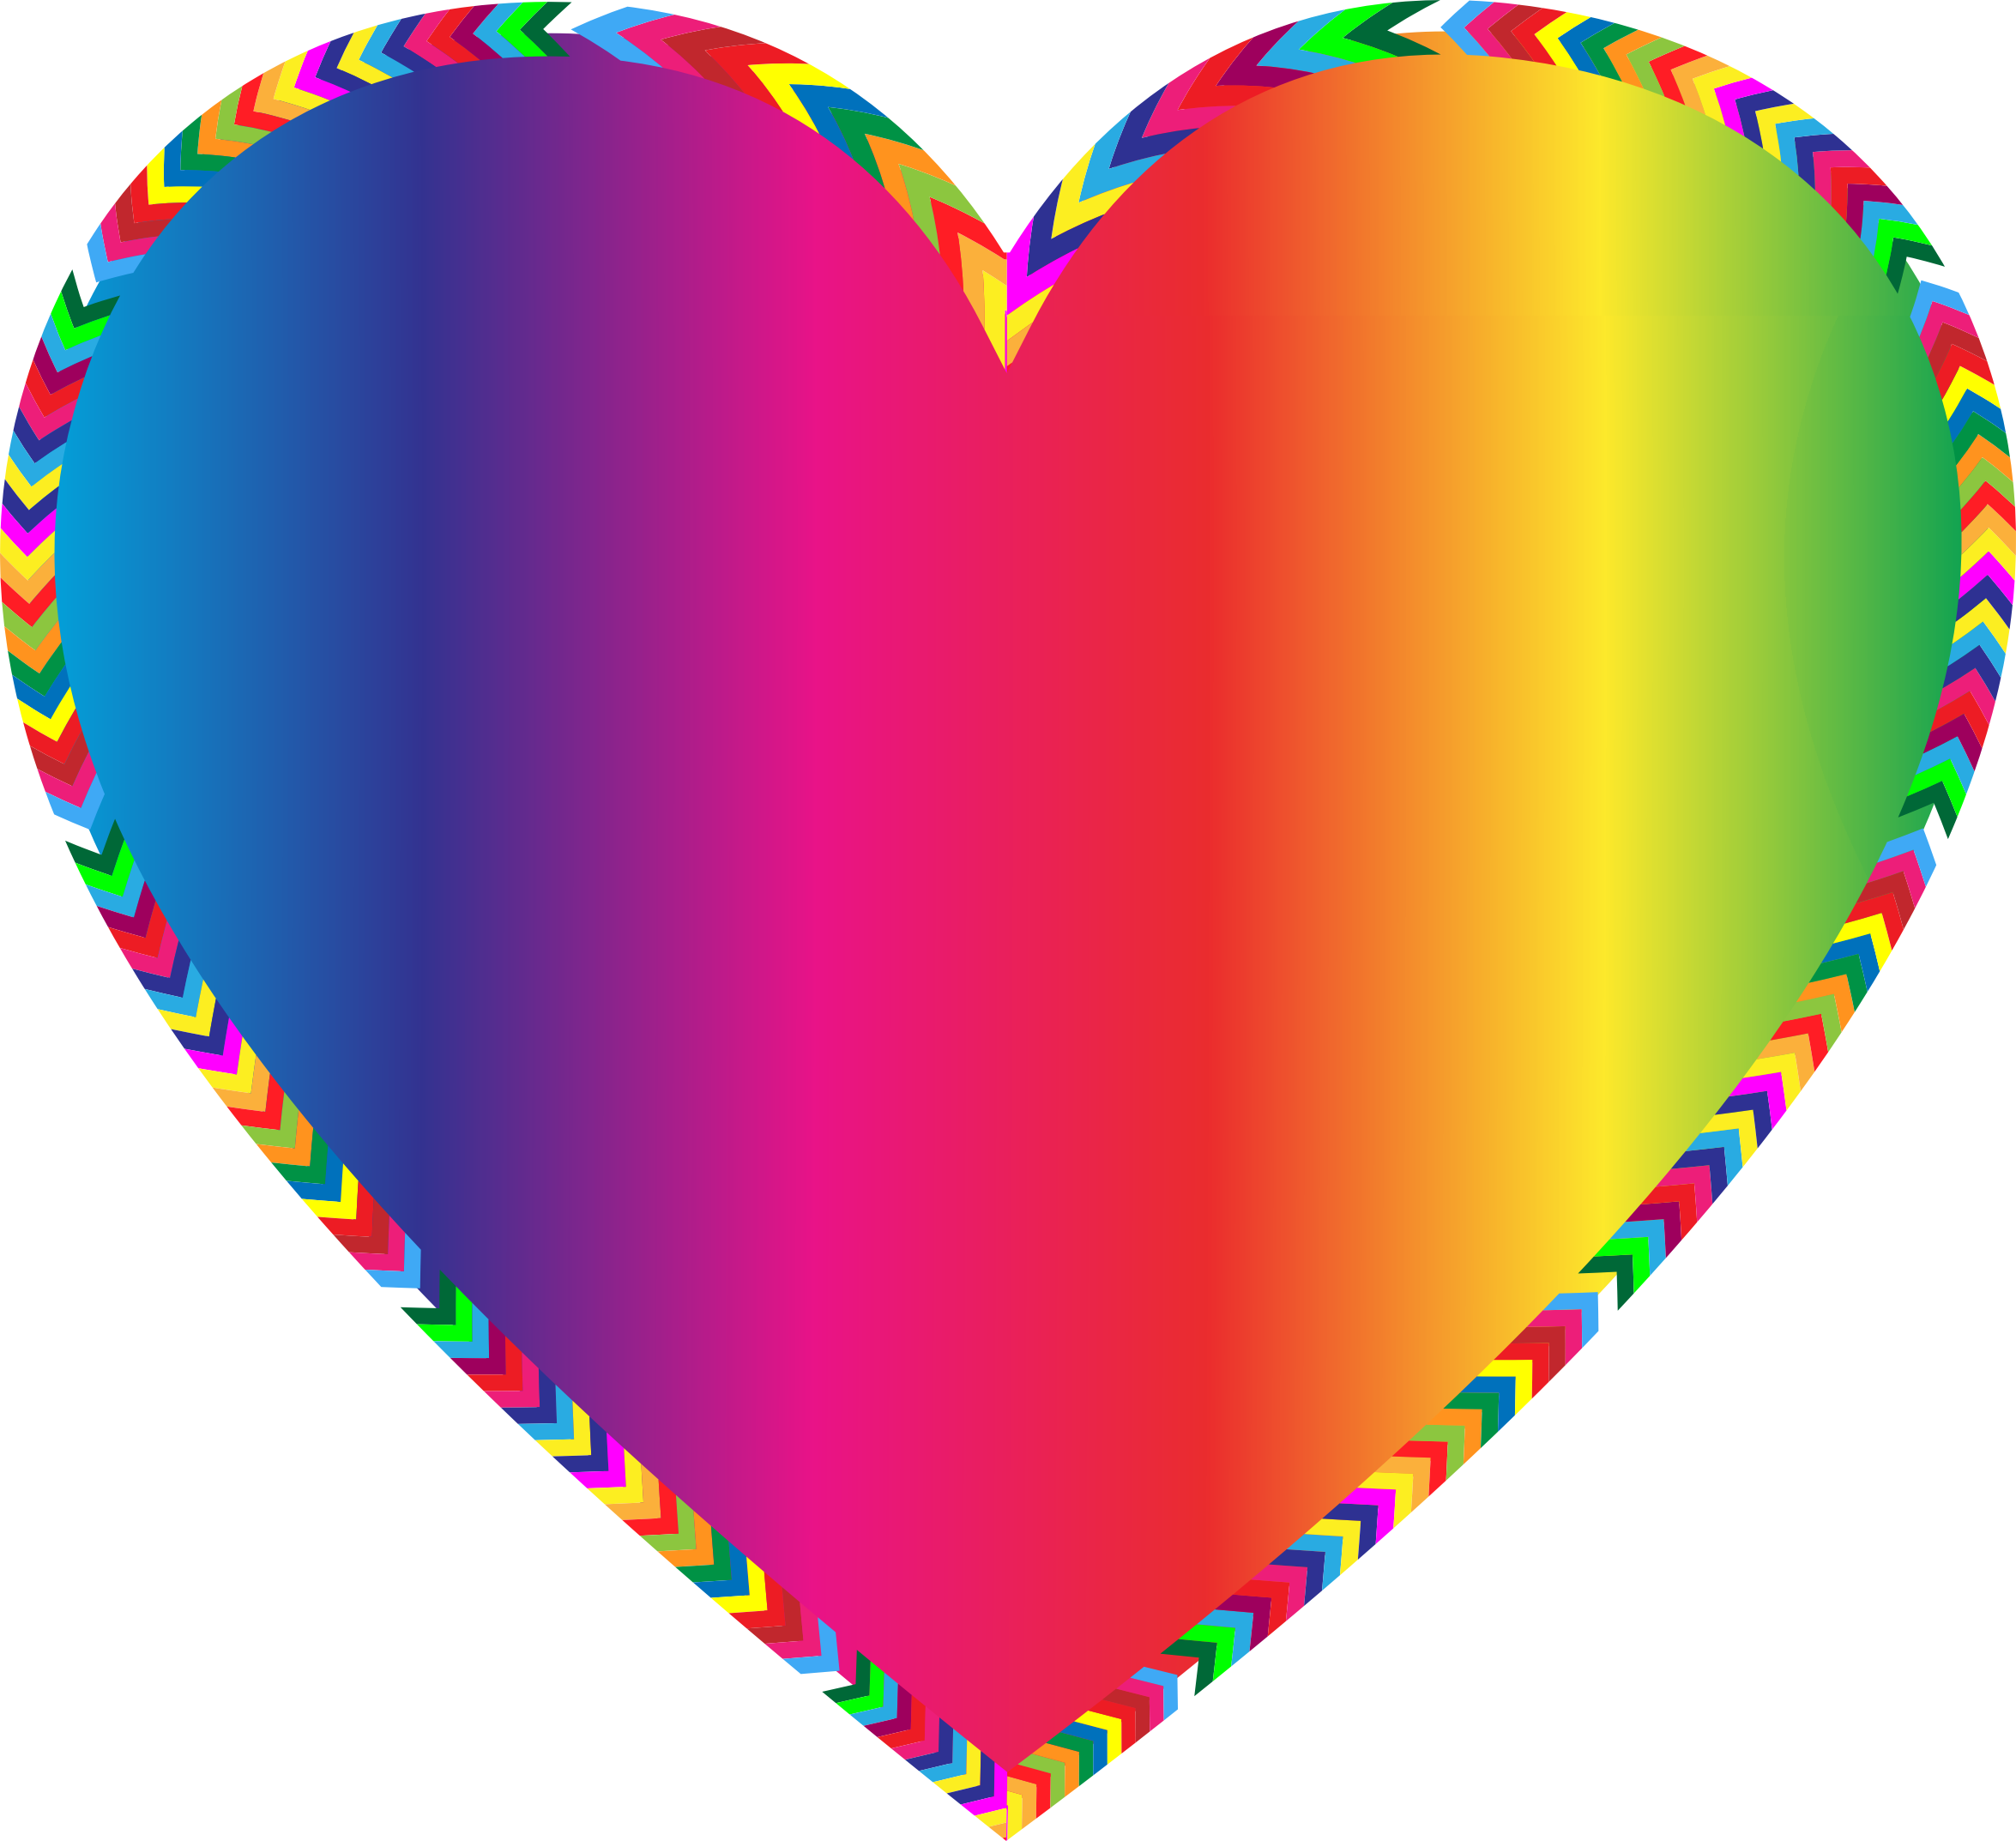 Circle clipart tie dye. Multicolored arrows heart filled